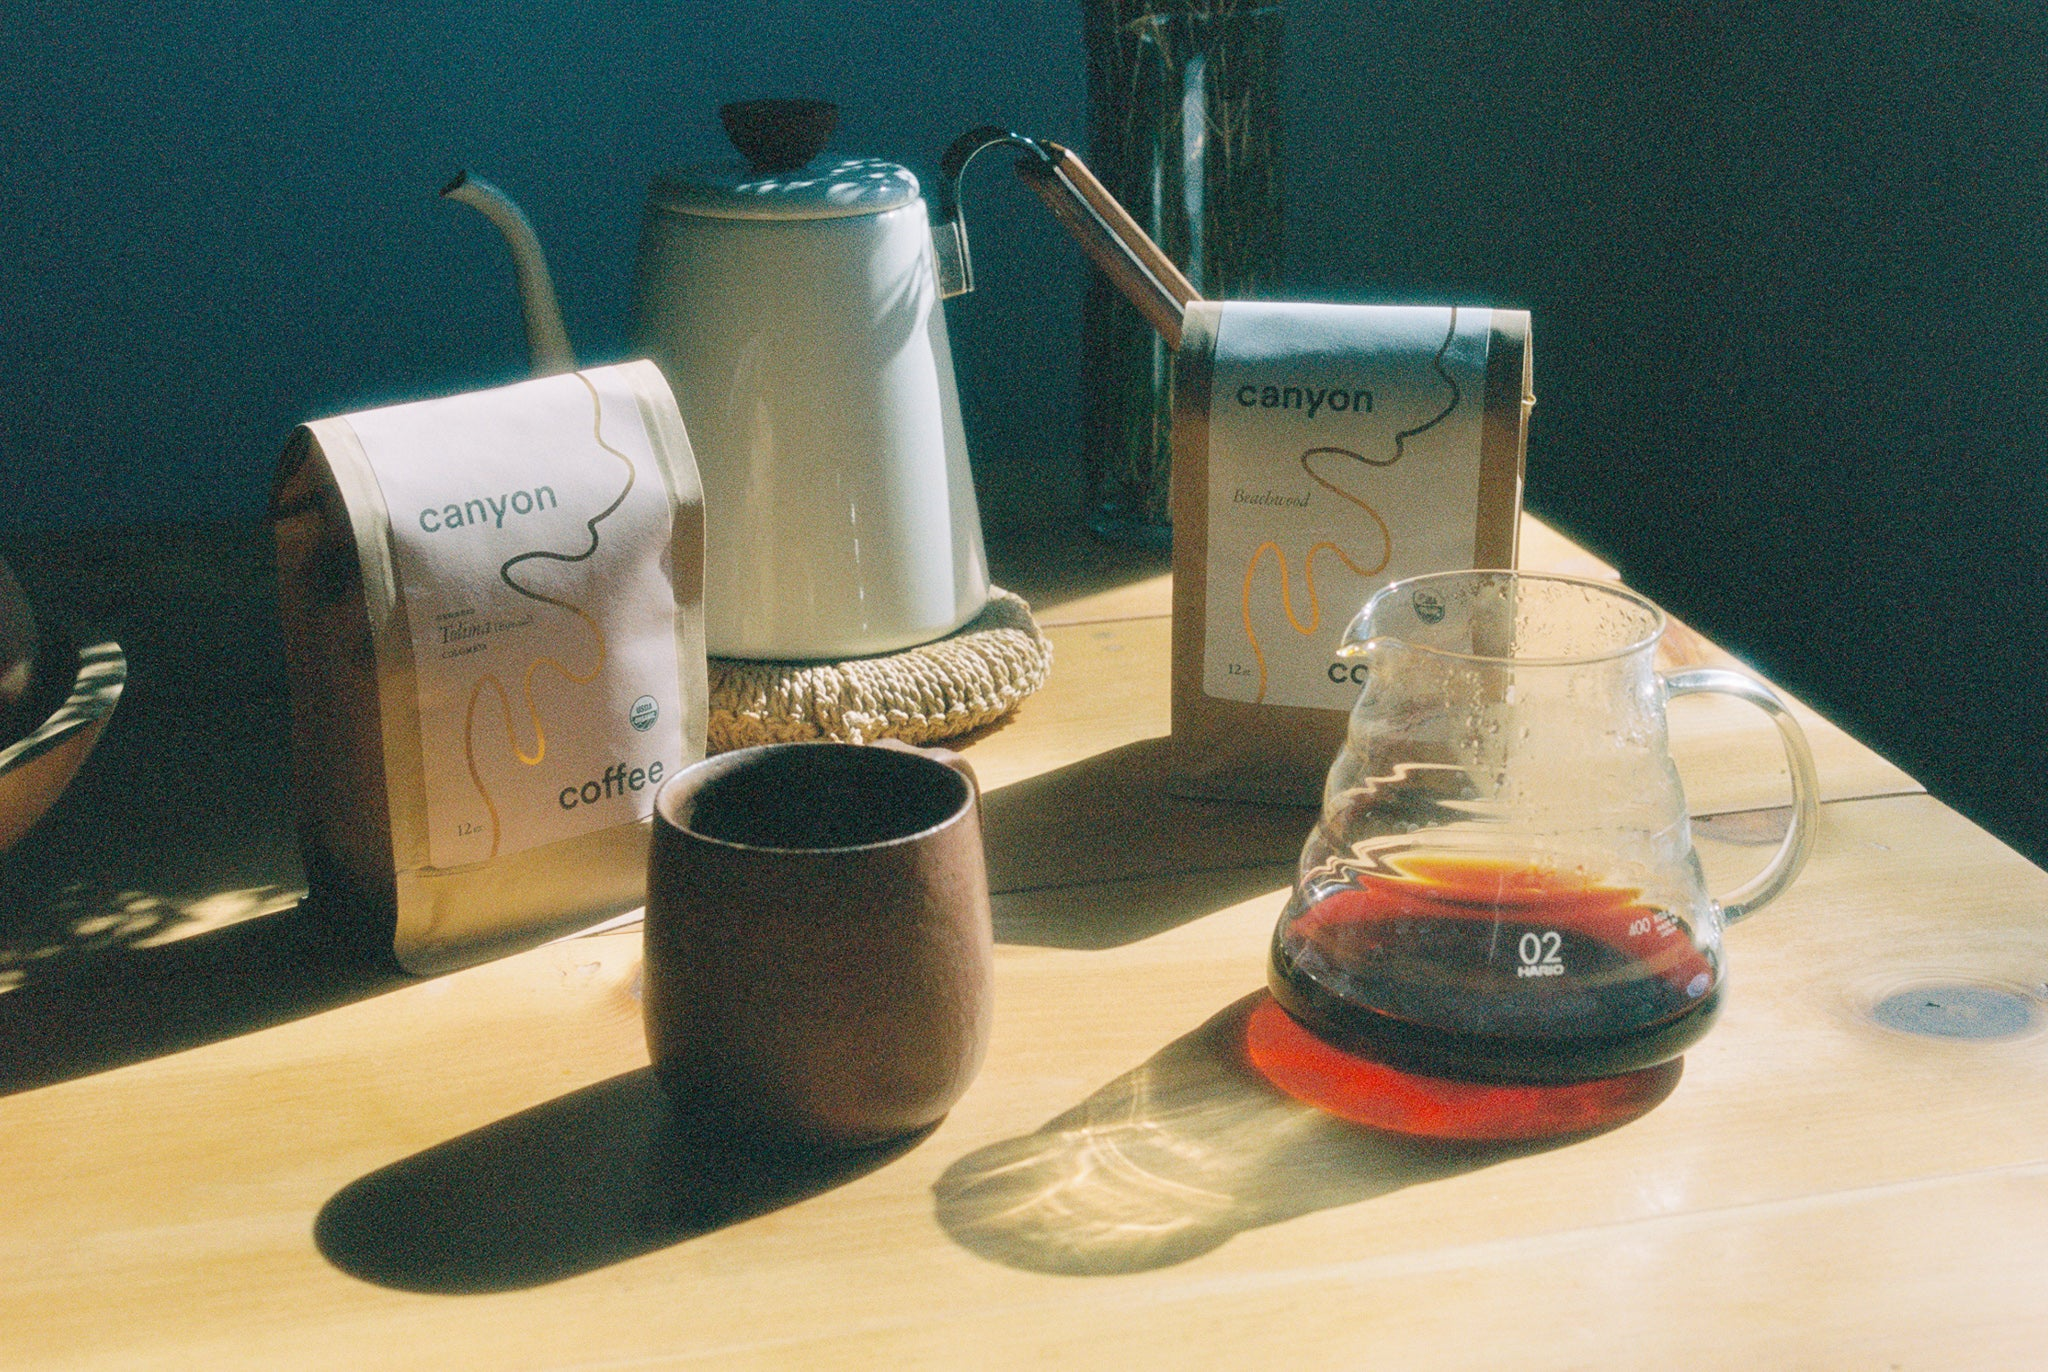 Canyon Coffee on a kitchen table: bag of Canyon Coffee, mug by Alison Andersson, and V60 with black drip coffee